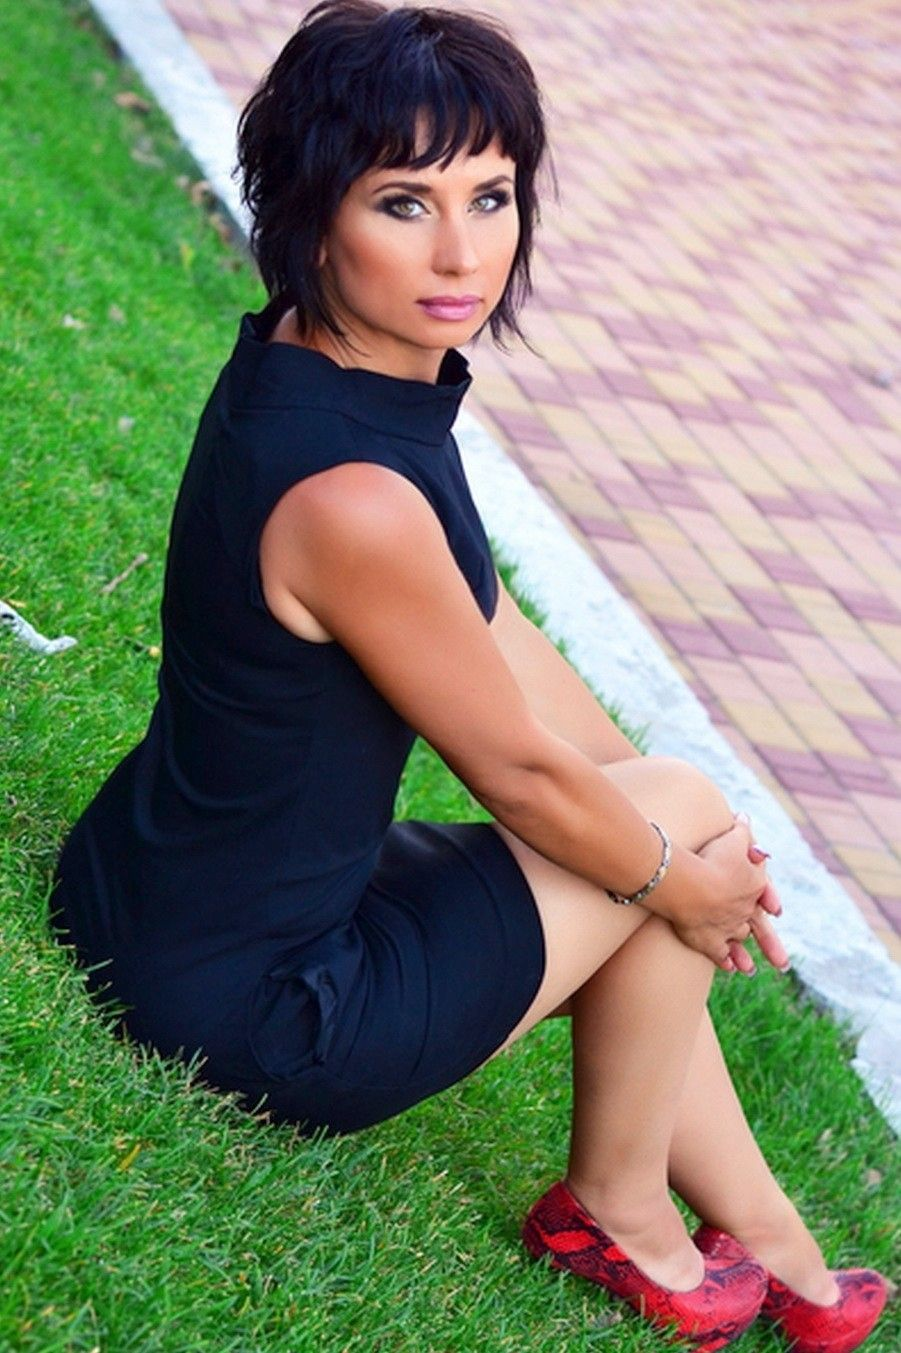 Puerto rico online dating